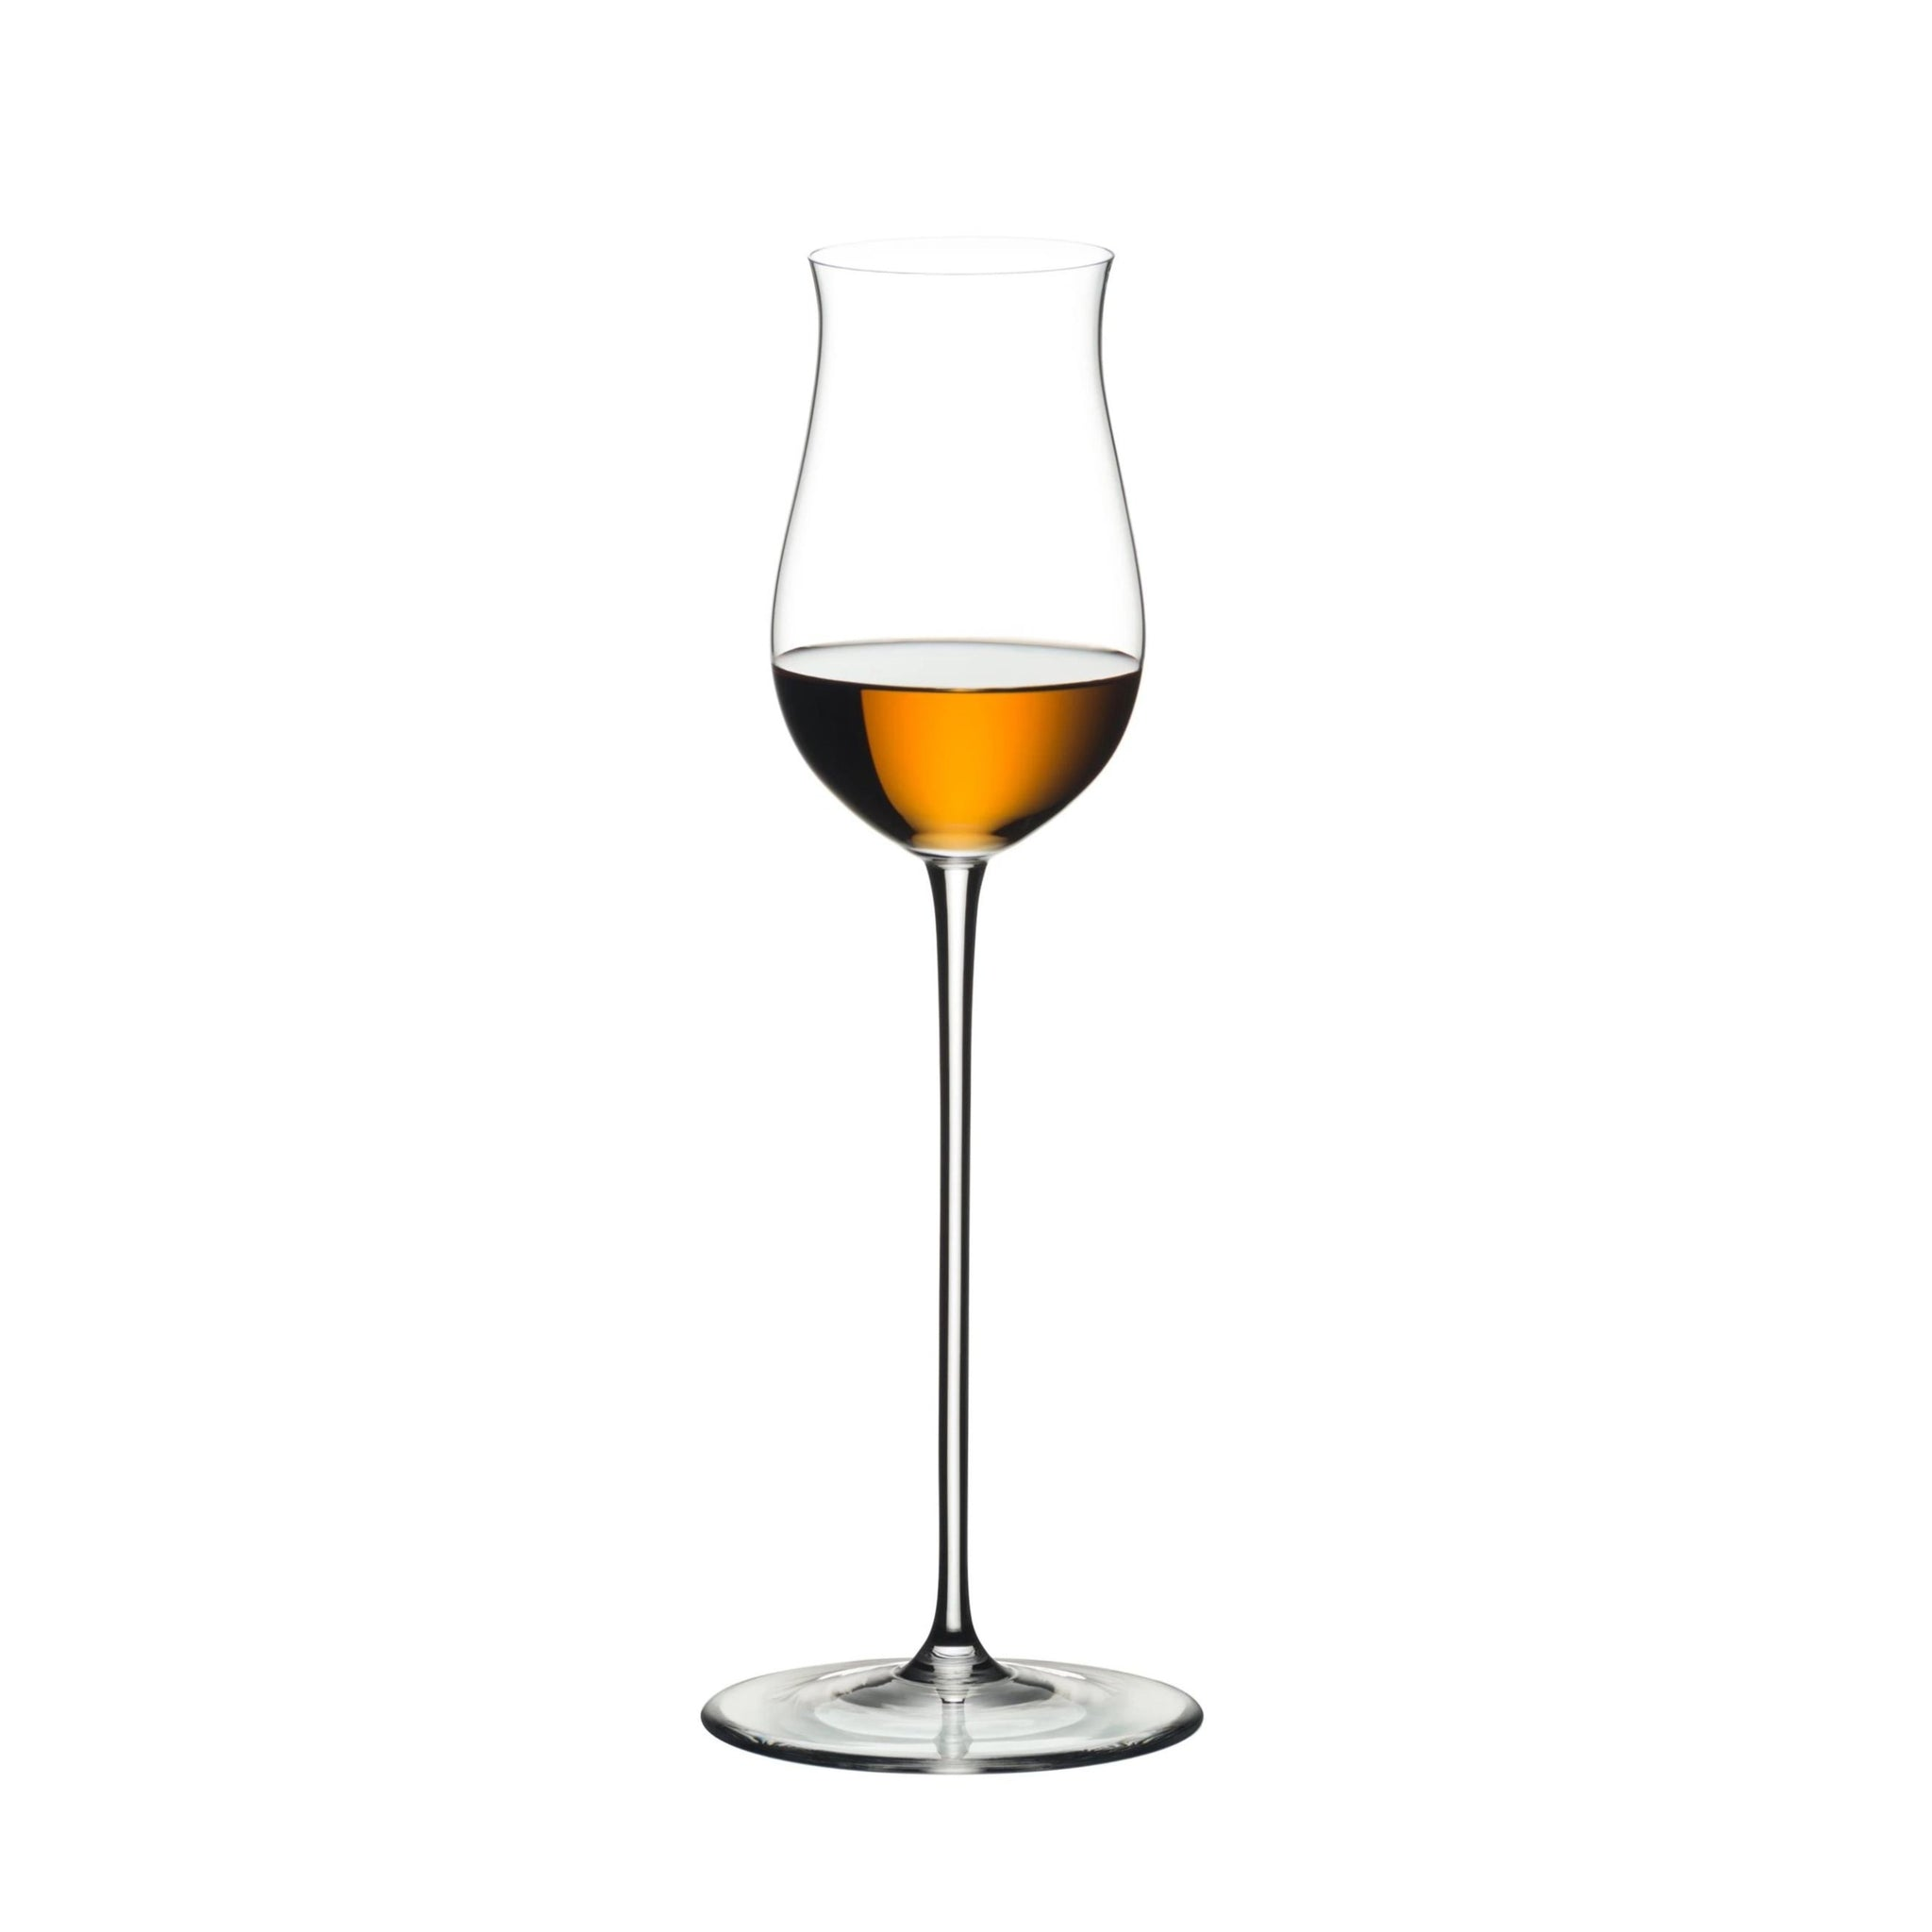 Riedel Veritas Spirits Glass (set of 2)